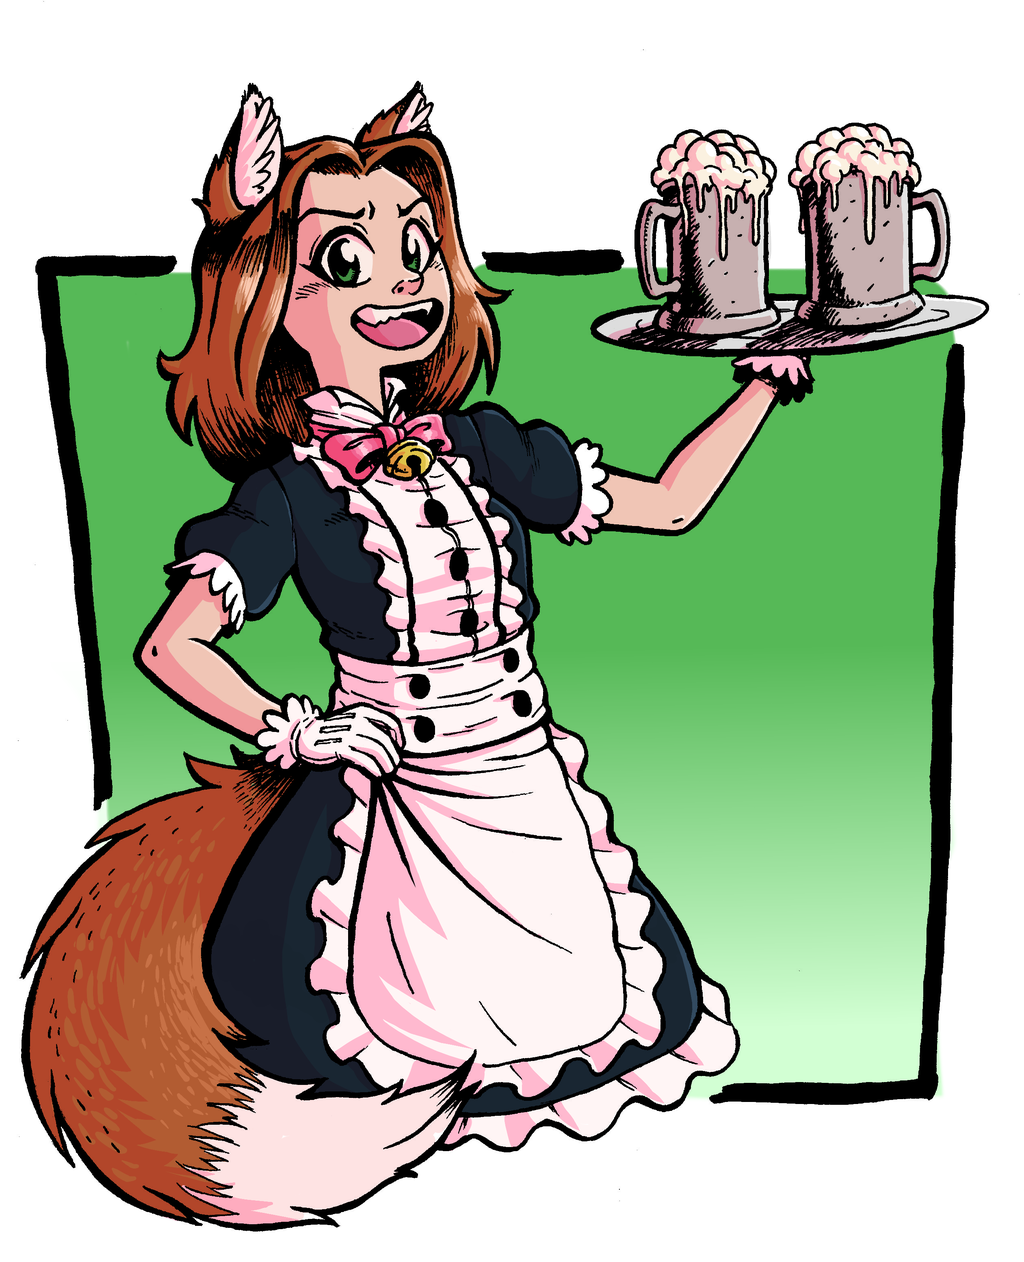 Little Maid Girl 4